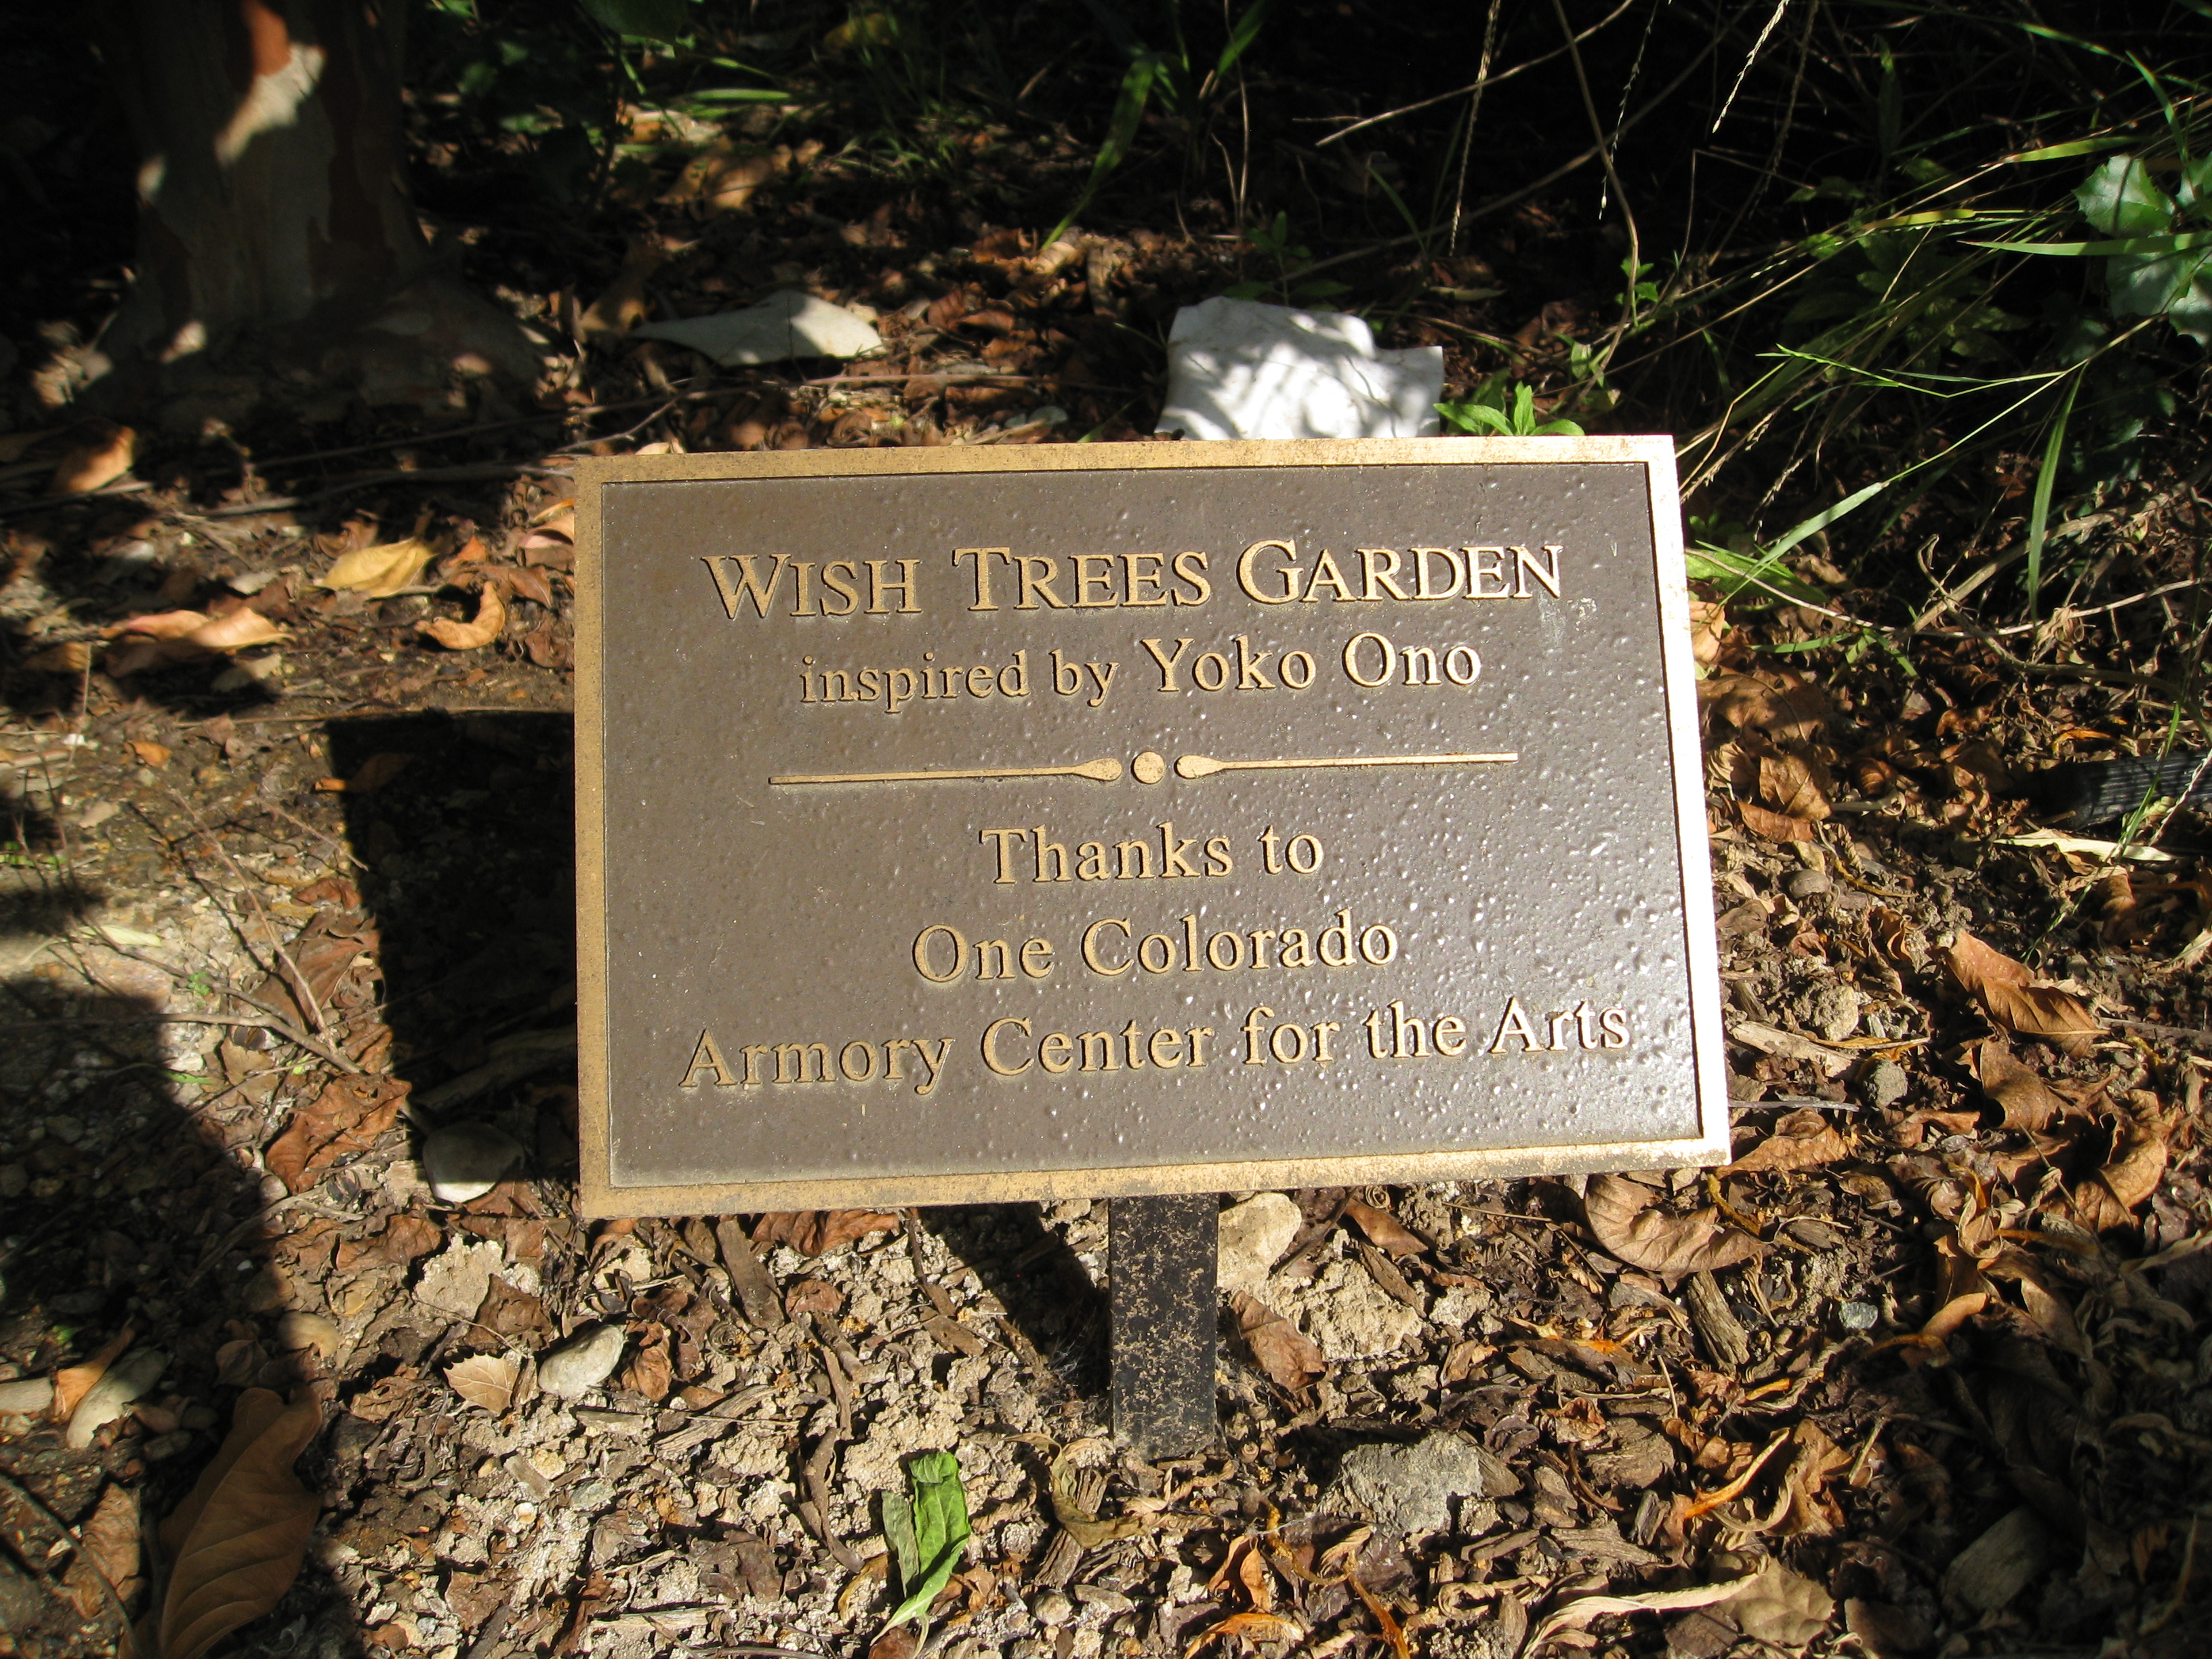 The Wish Trees Garden, a beautiful and heartfelt addition to the garden.